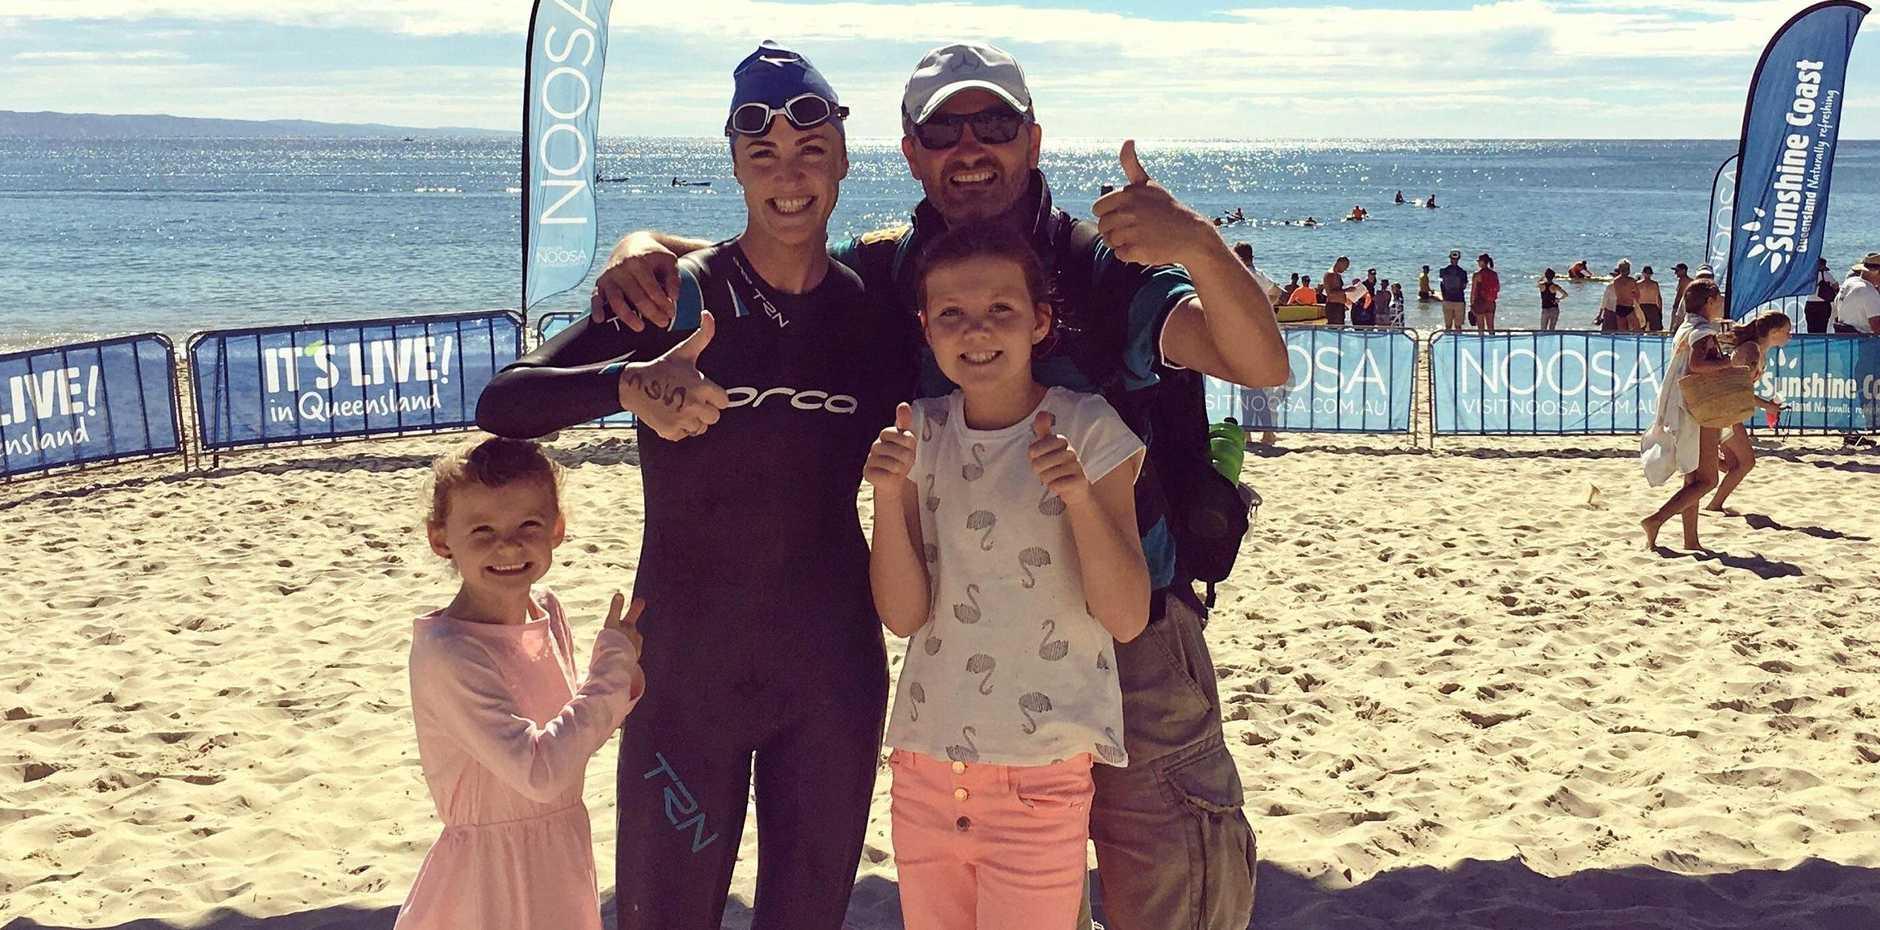 BIG BREAKTHROUGH: Yeppoon's Mara O'Reilly with husband Sheamus and daughters Cliodhna and Neassa after she conquered her first 500m ocean swim at Noosa.